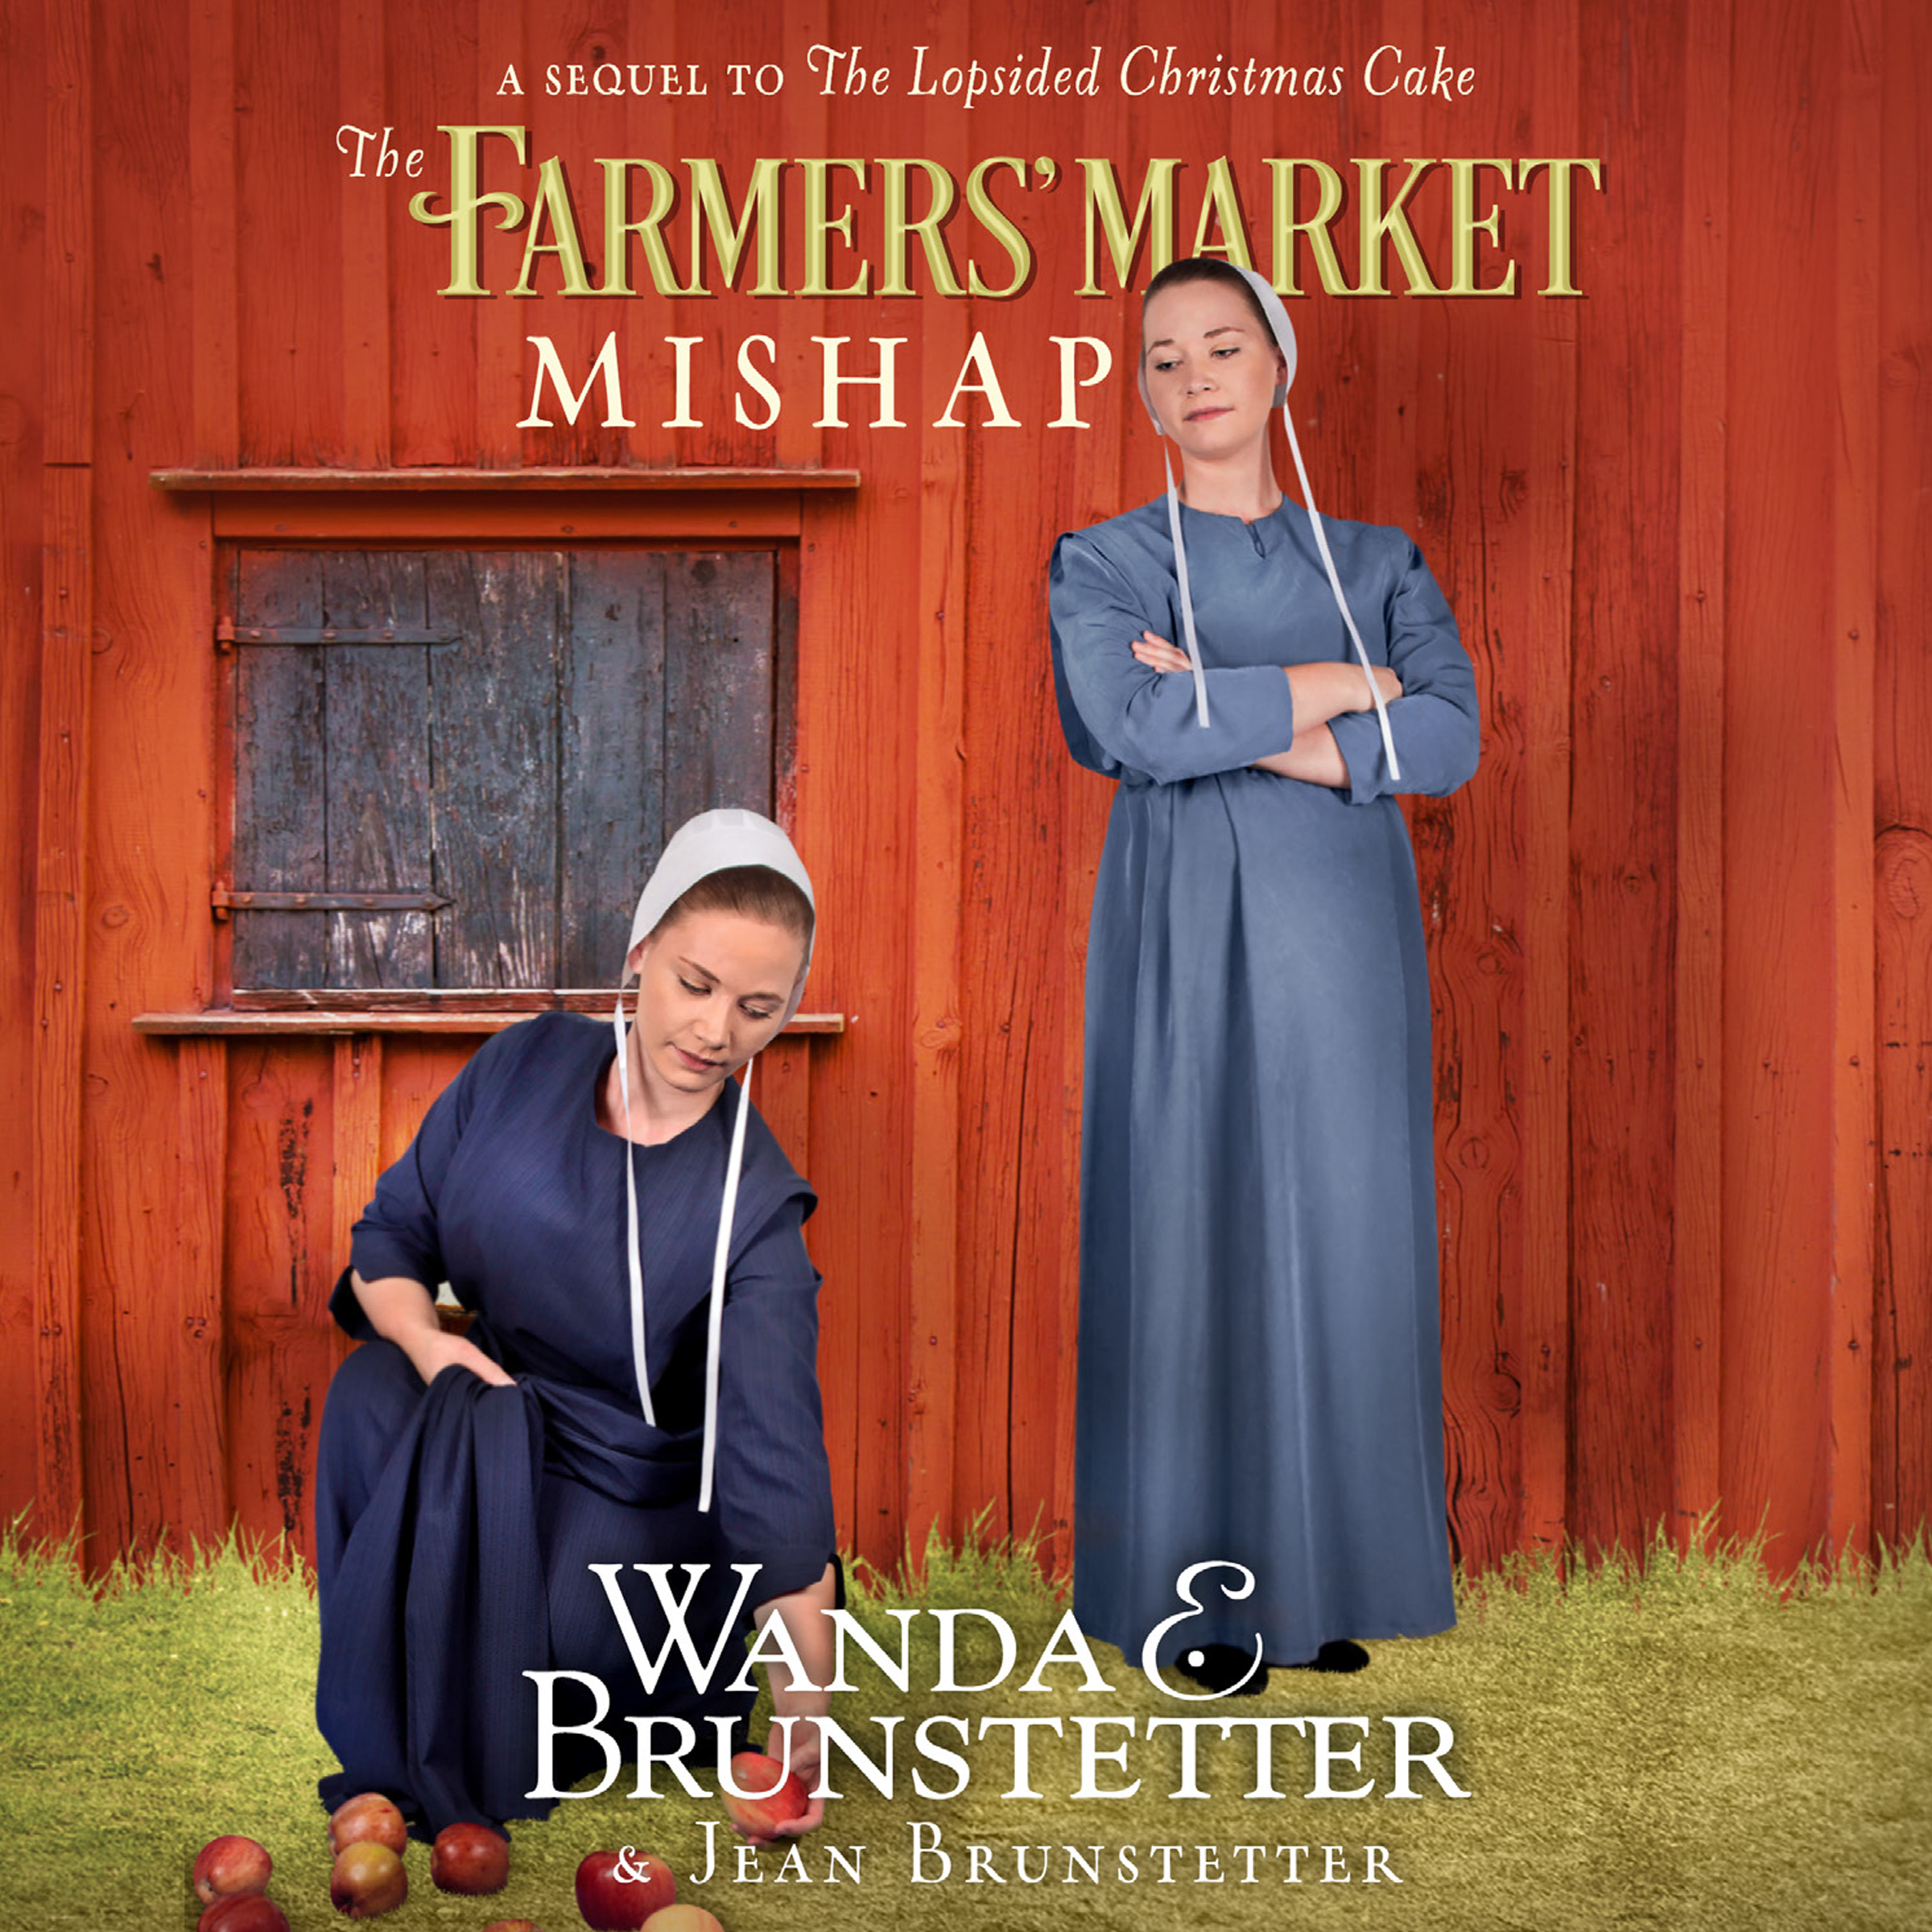 Printable The Farmers' Market Mishap: A Sequel to the Lopsided Christmas Cake Audiobook Cover Art